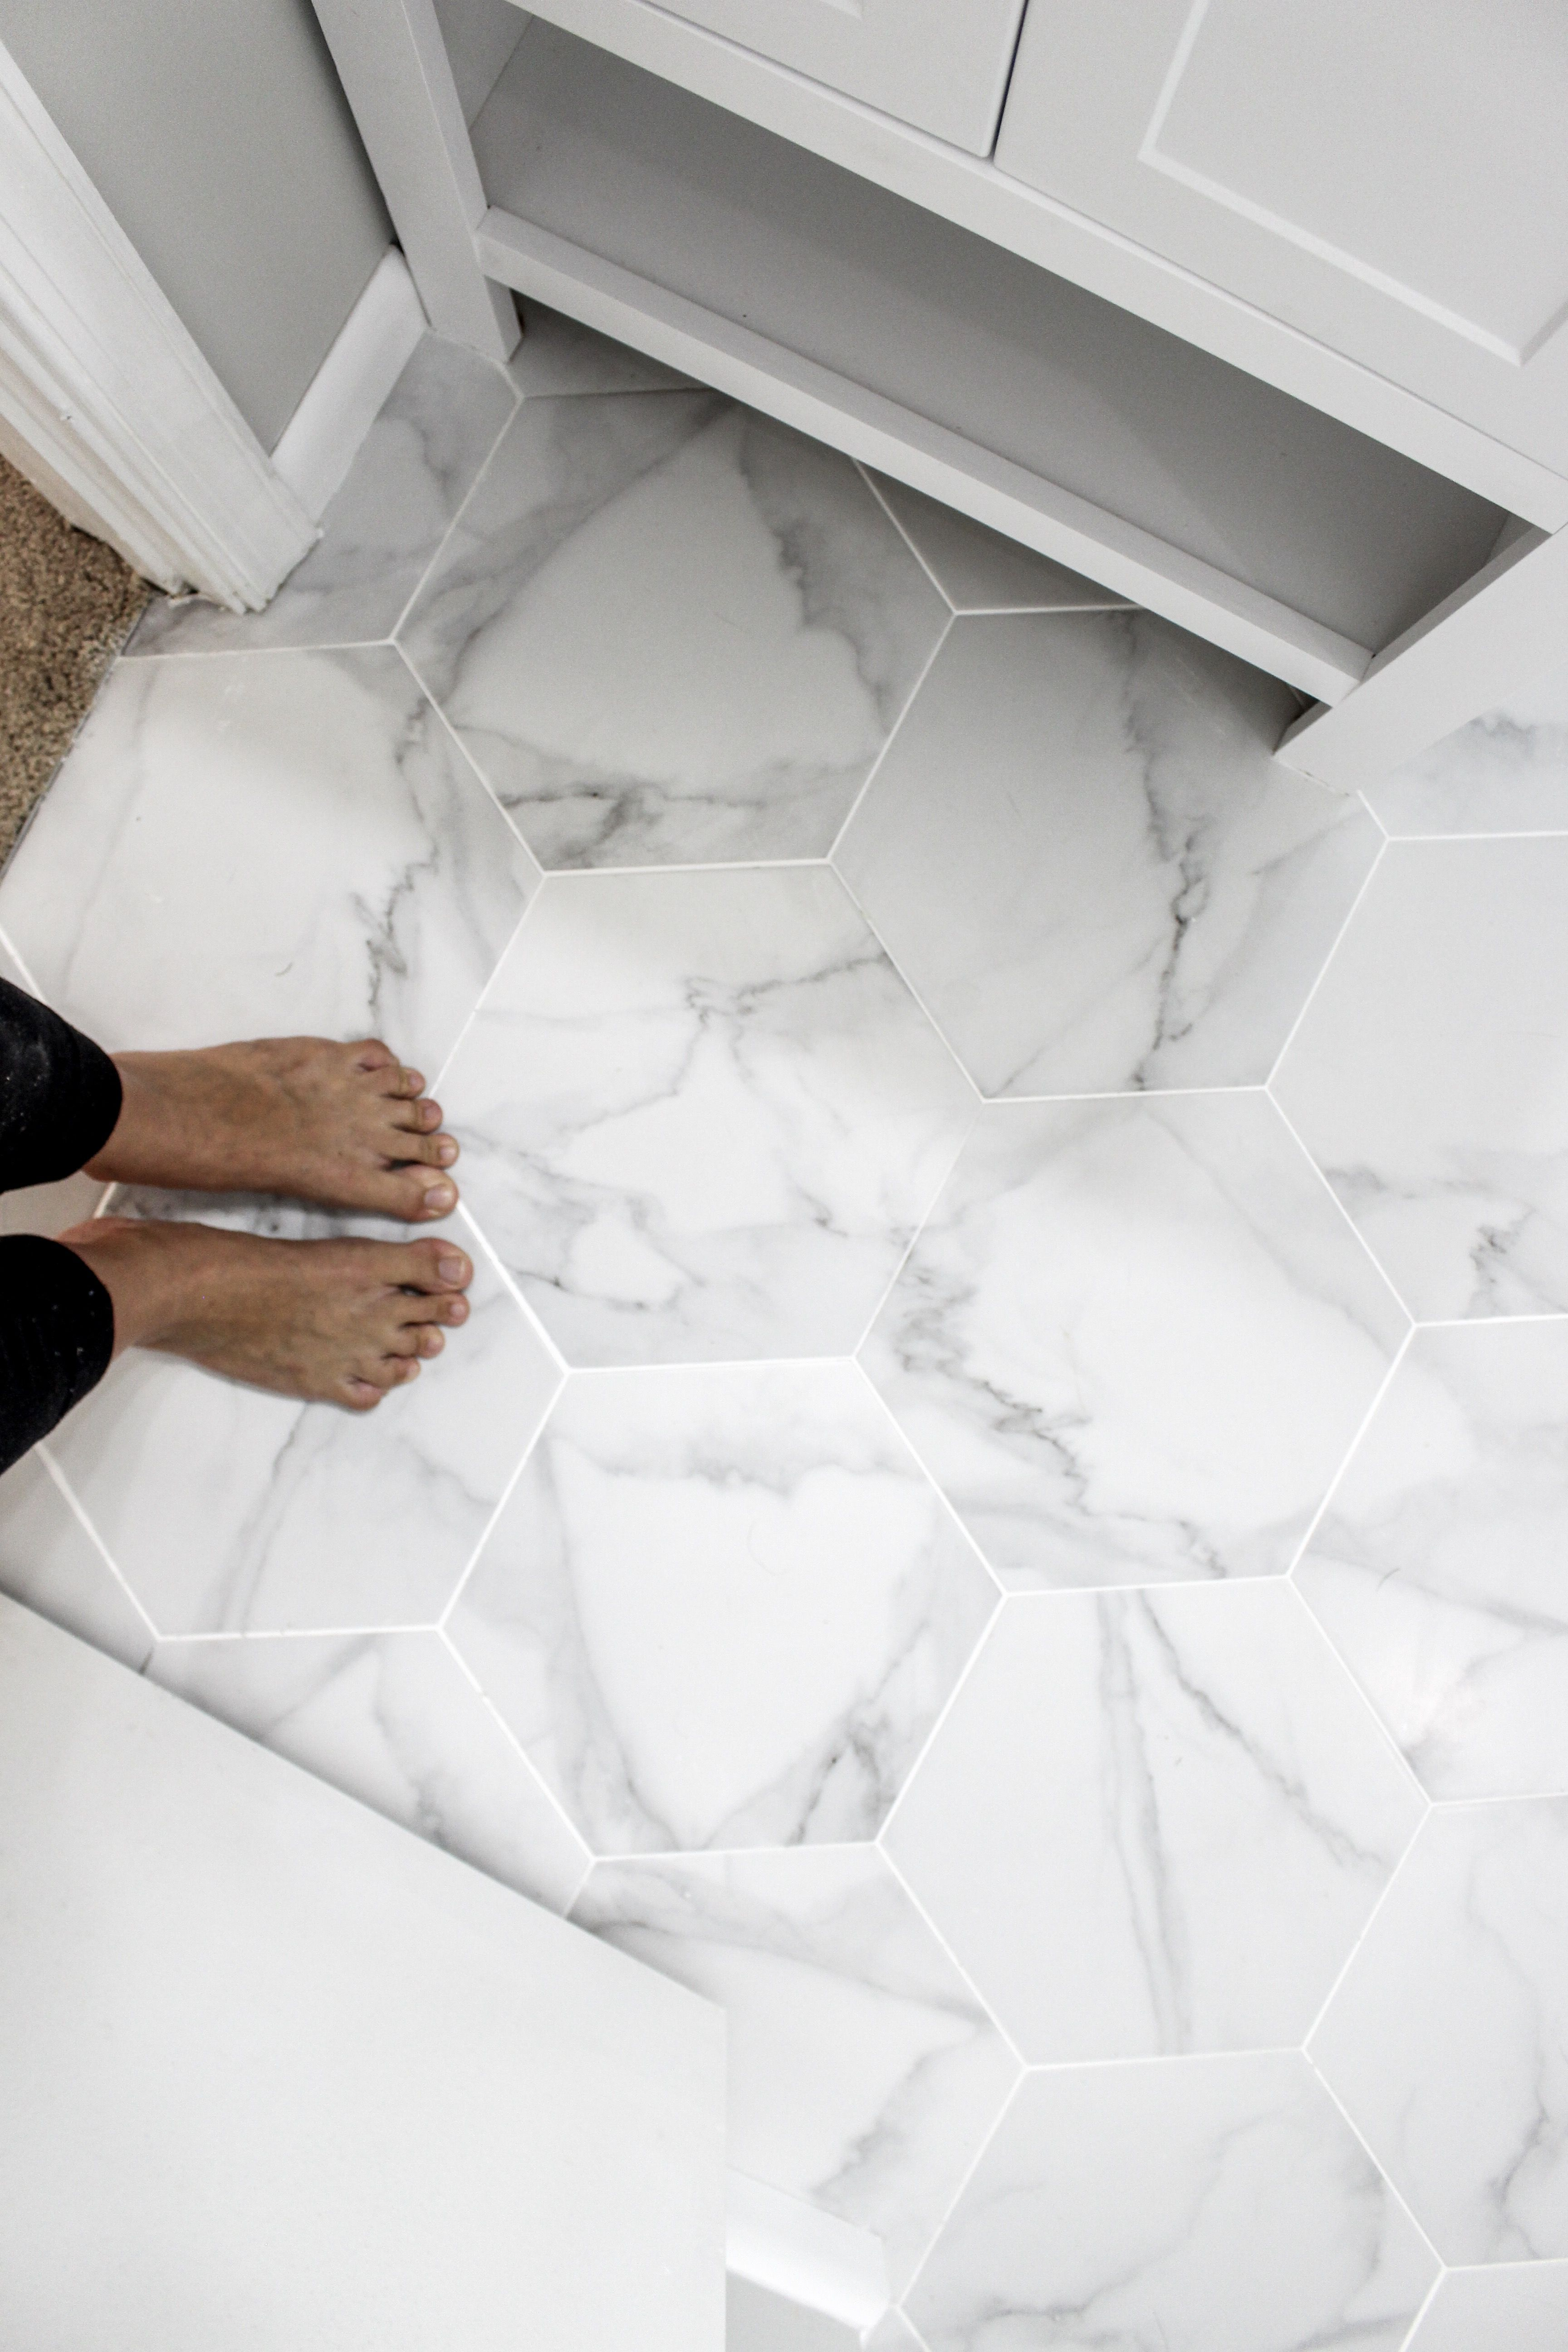 This Porcelain Hexagon Floor Tile we are swooning